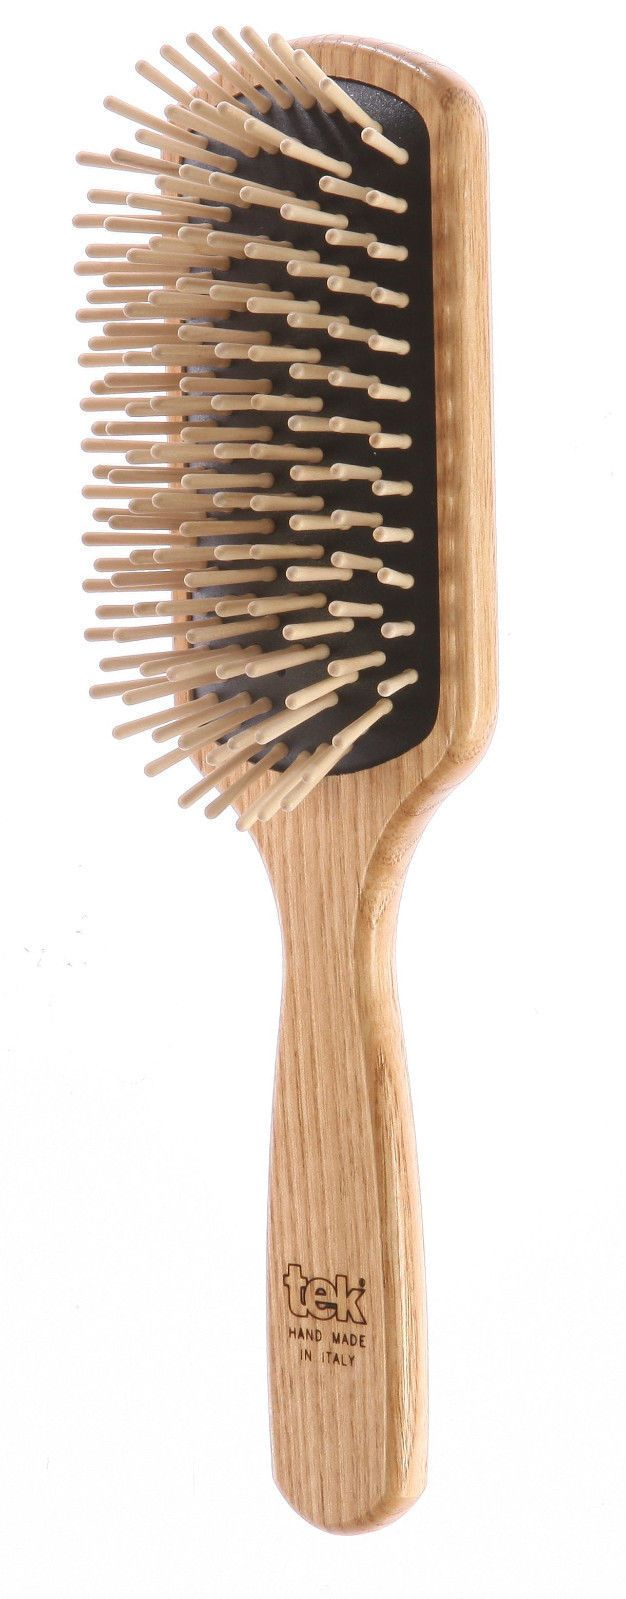 Wooden Hair Brush by Tek best for distributing hairs natural oils. A good thing to have for healthy hair.